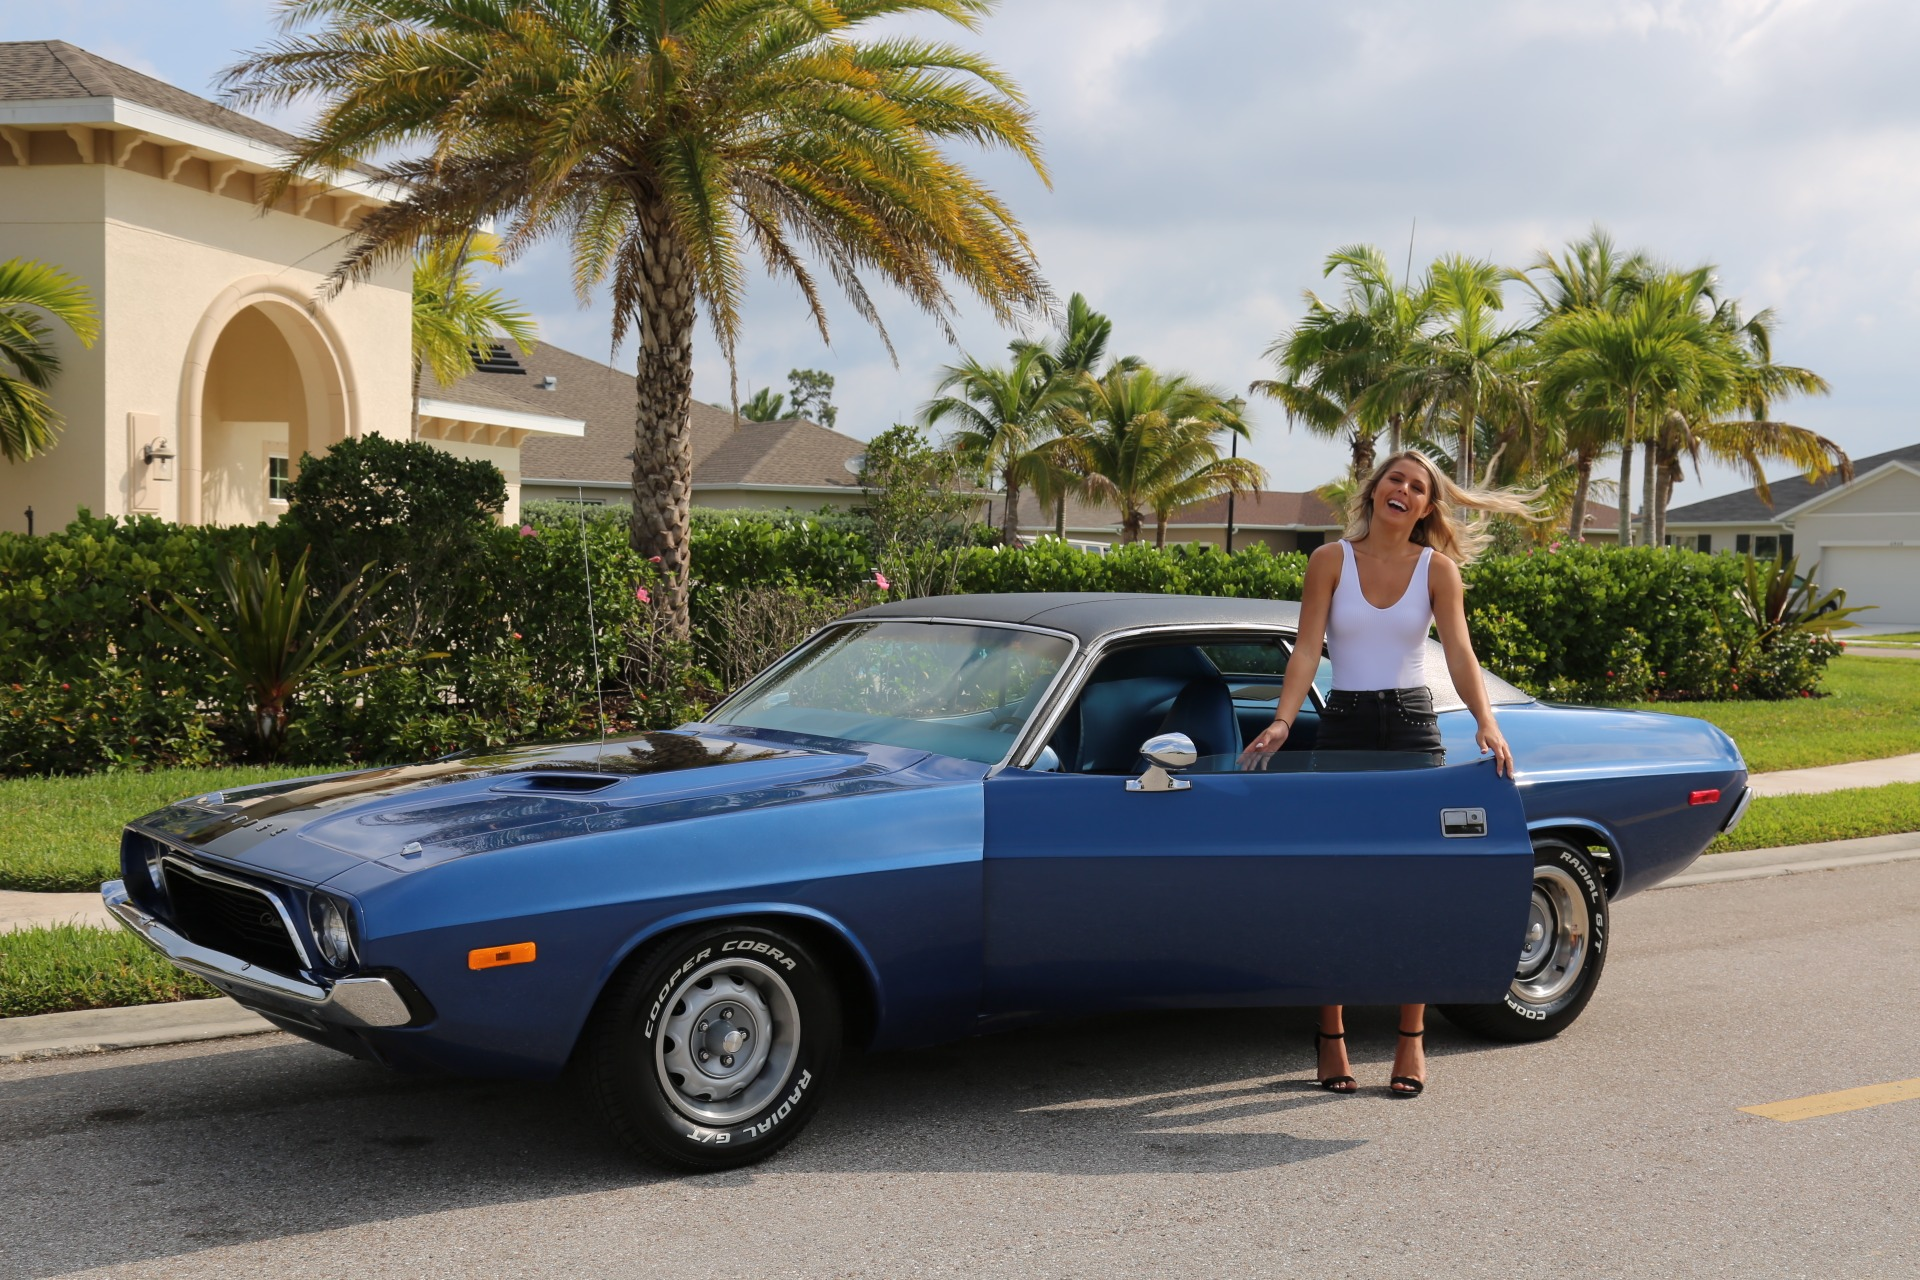 Used 1973 Dodge Challenger 360 V8 Automatic for sale Sold at Muscle Cars for Sale Inc. in Fort Myers FL 33912 2